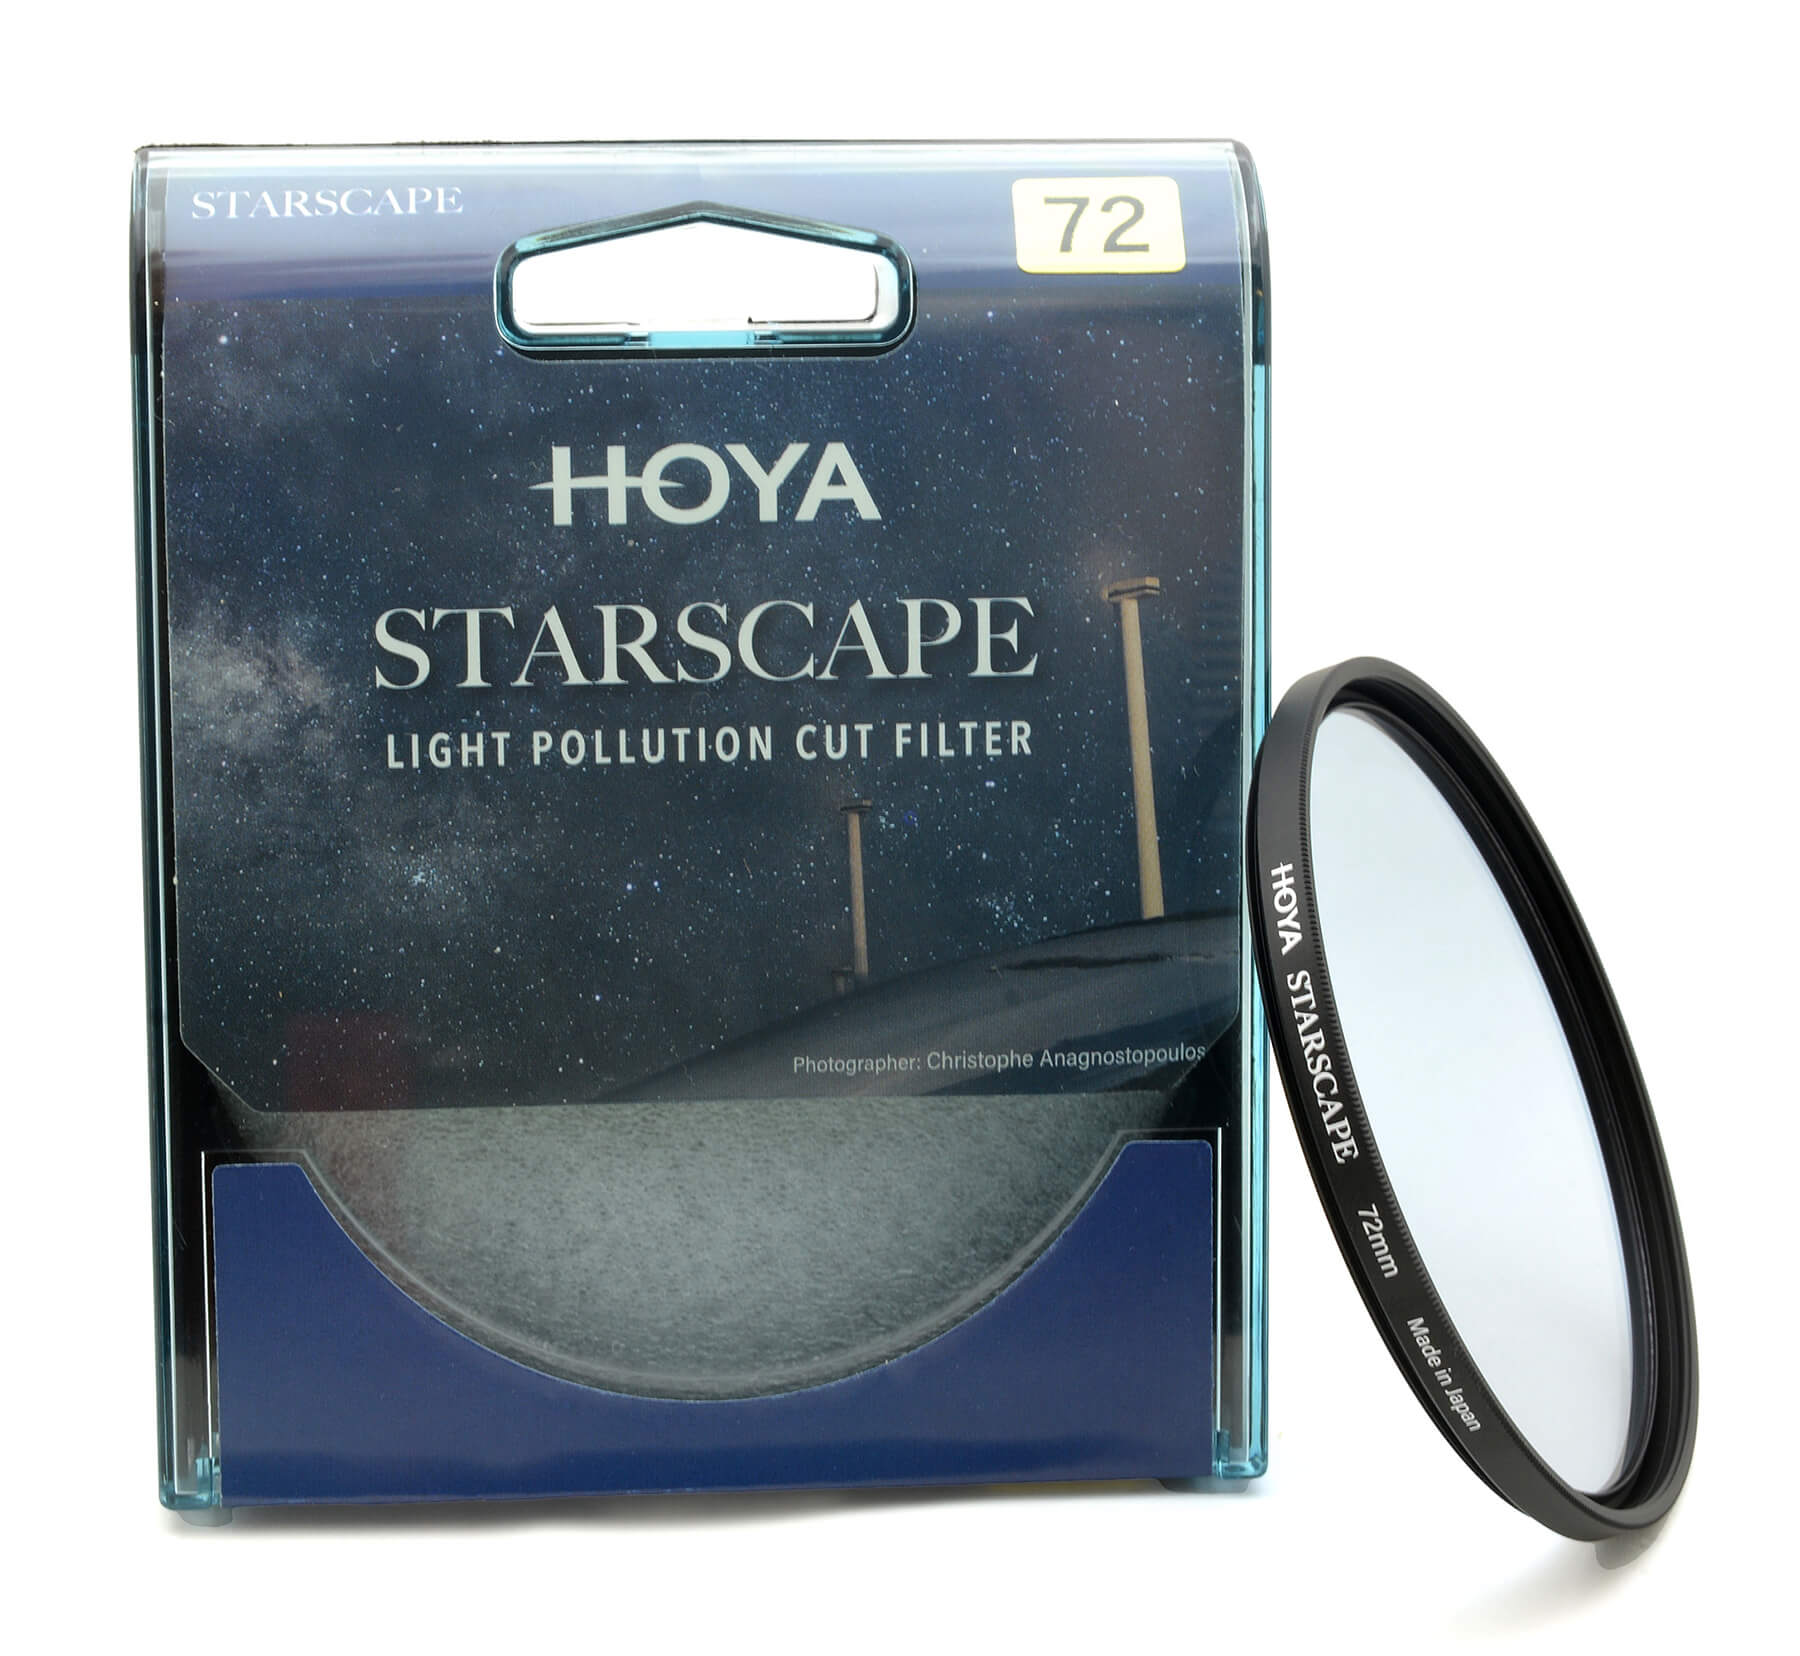 HOYA Starscape Filter